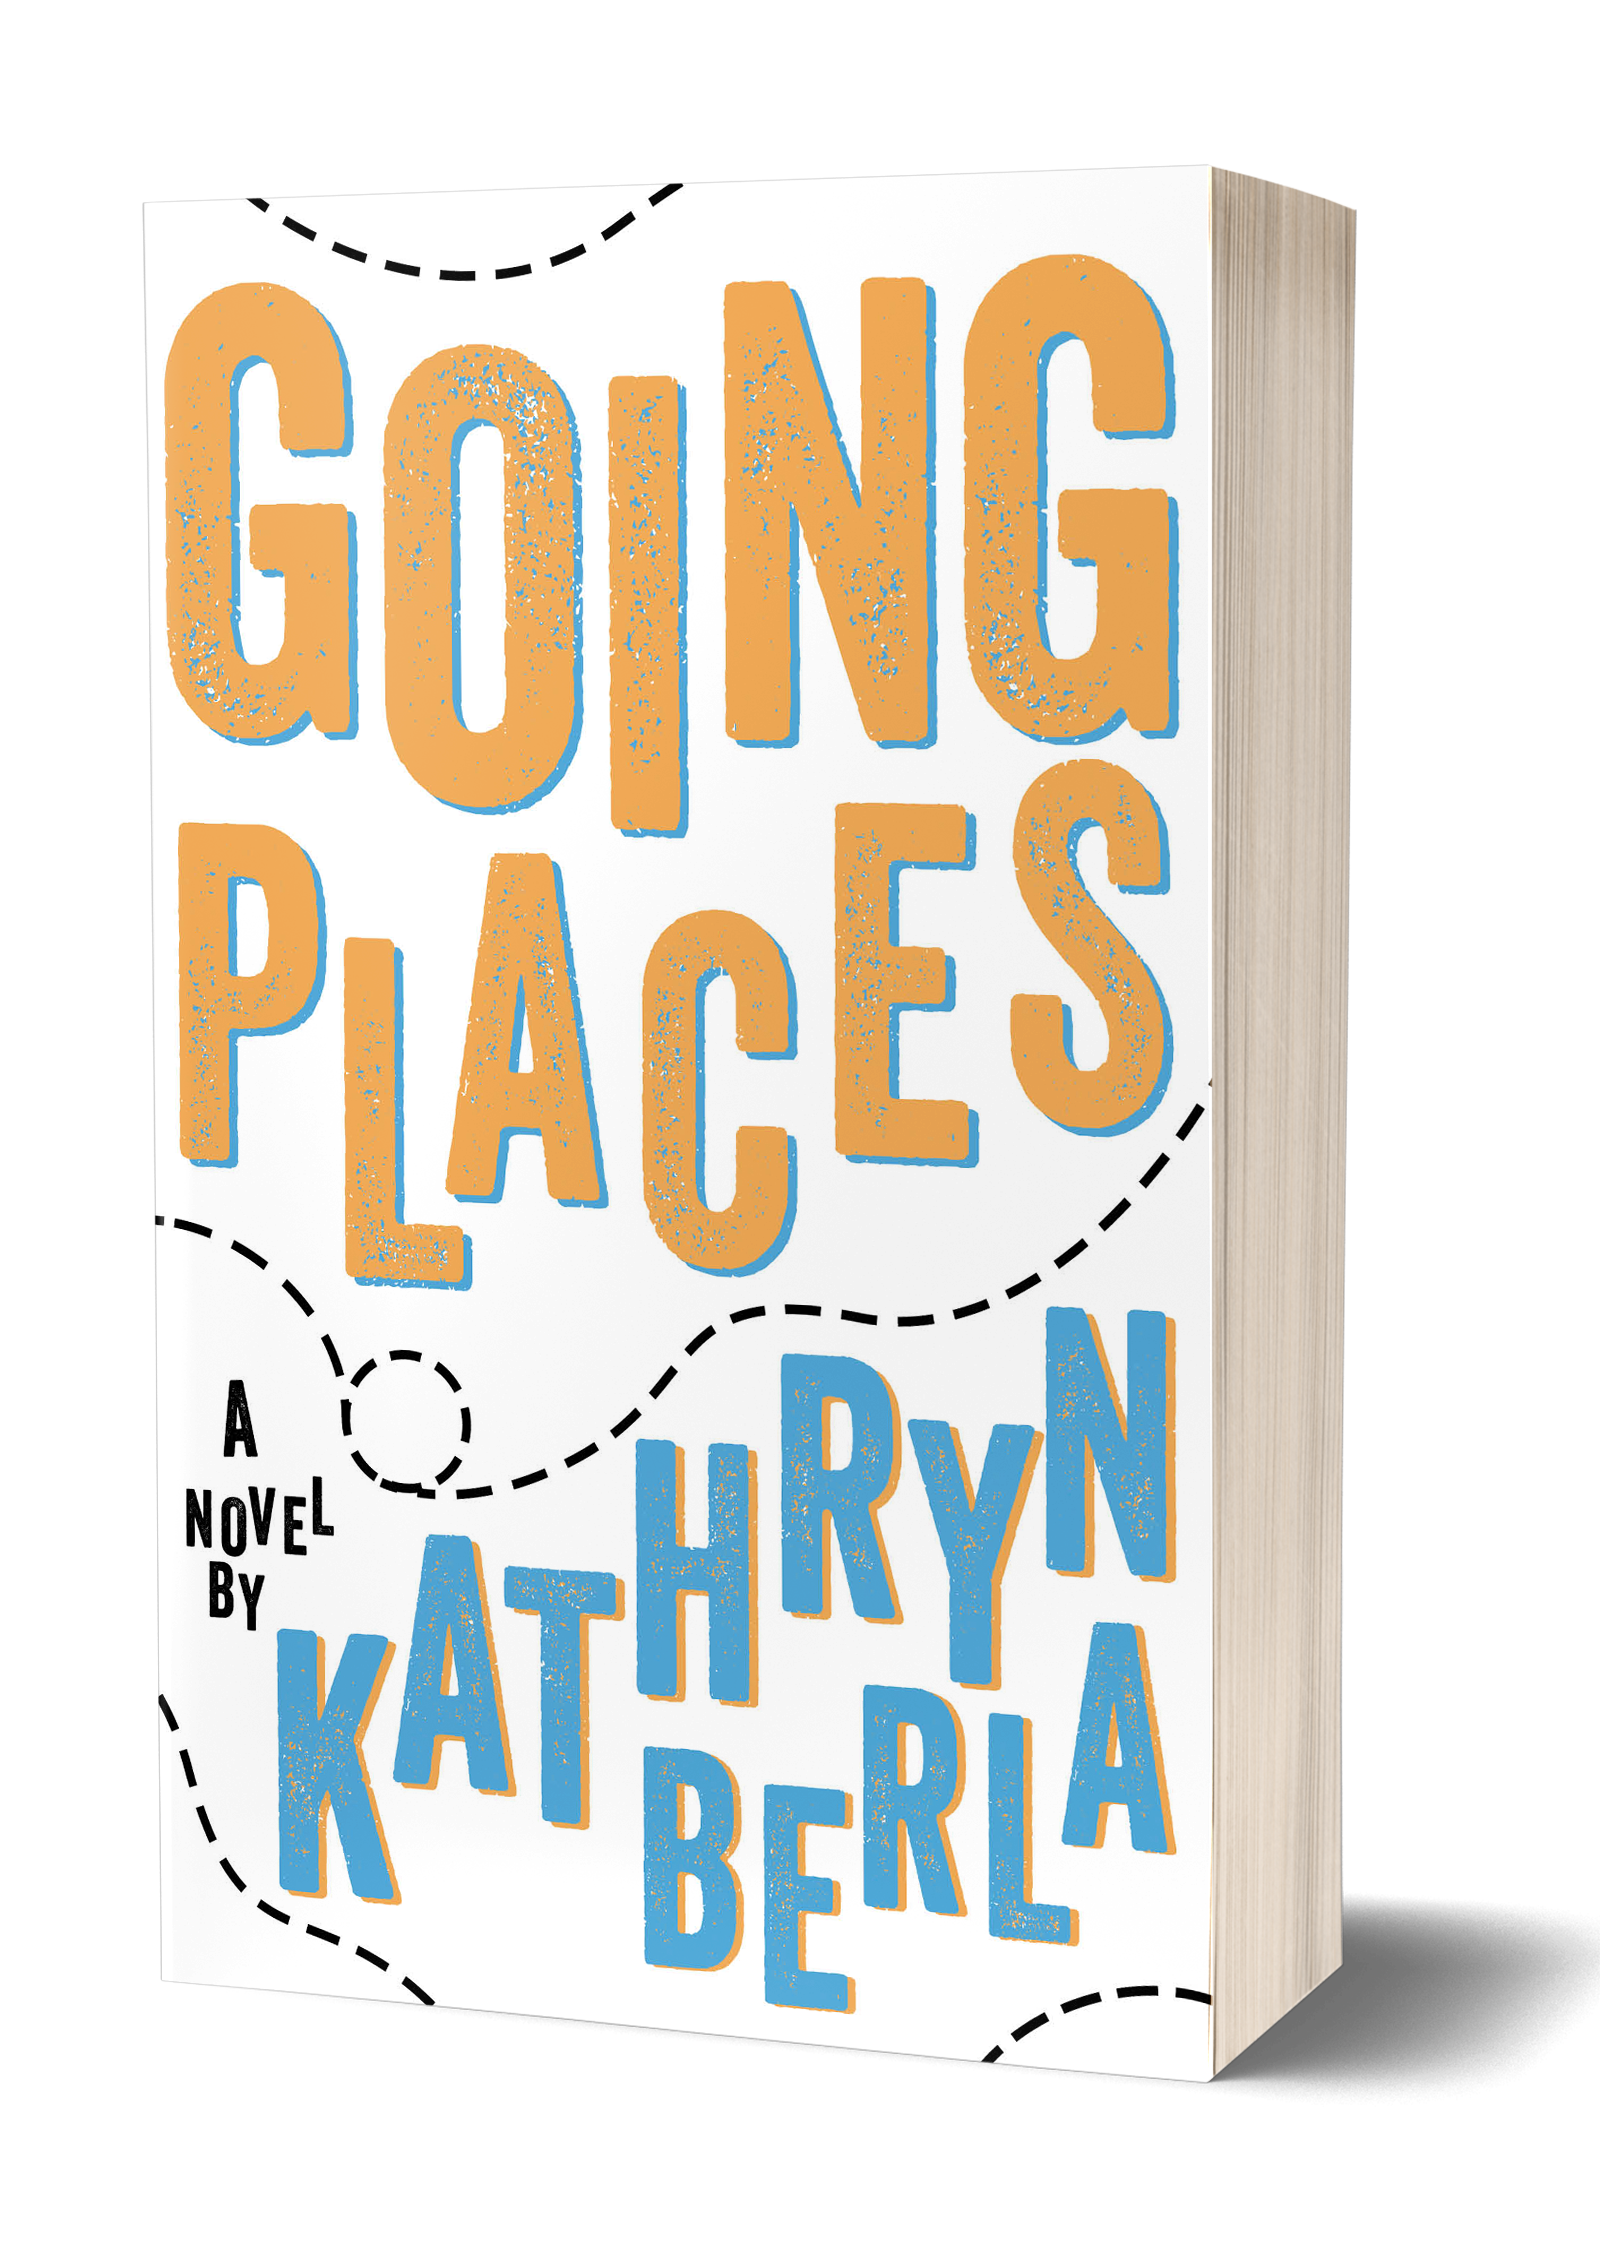 Going Plaaces book cover, yellow and blue writing, dashed lines meant to represent travel